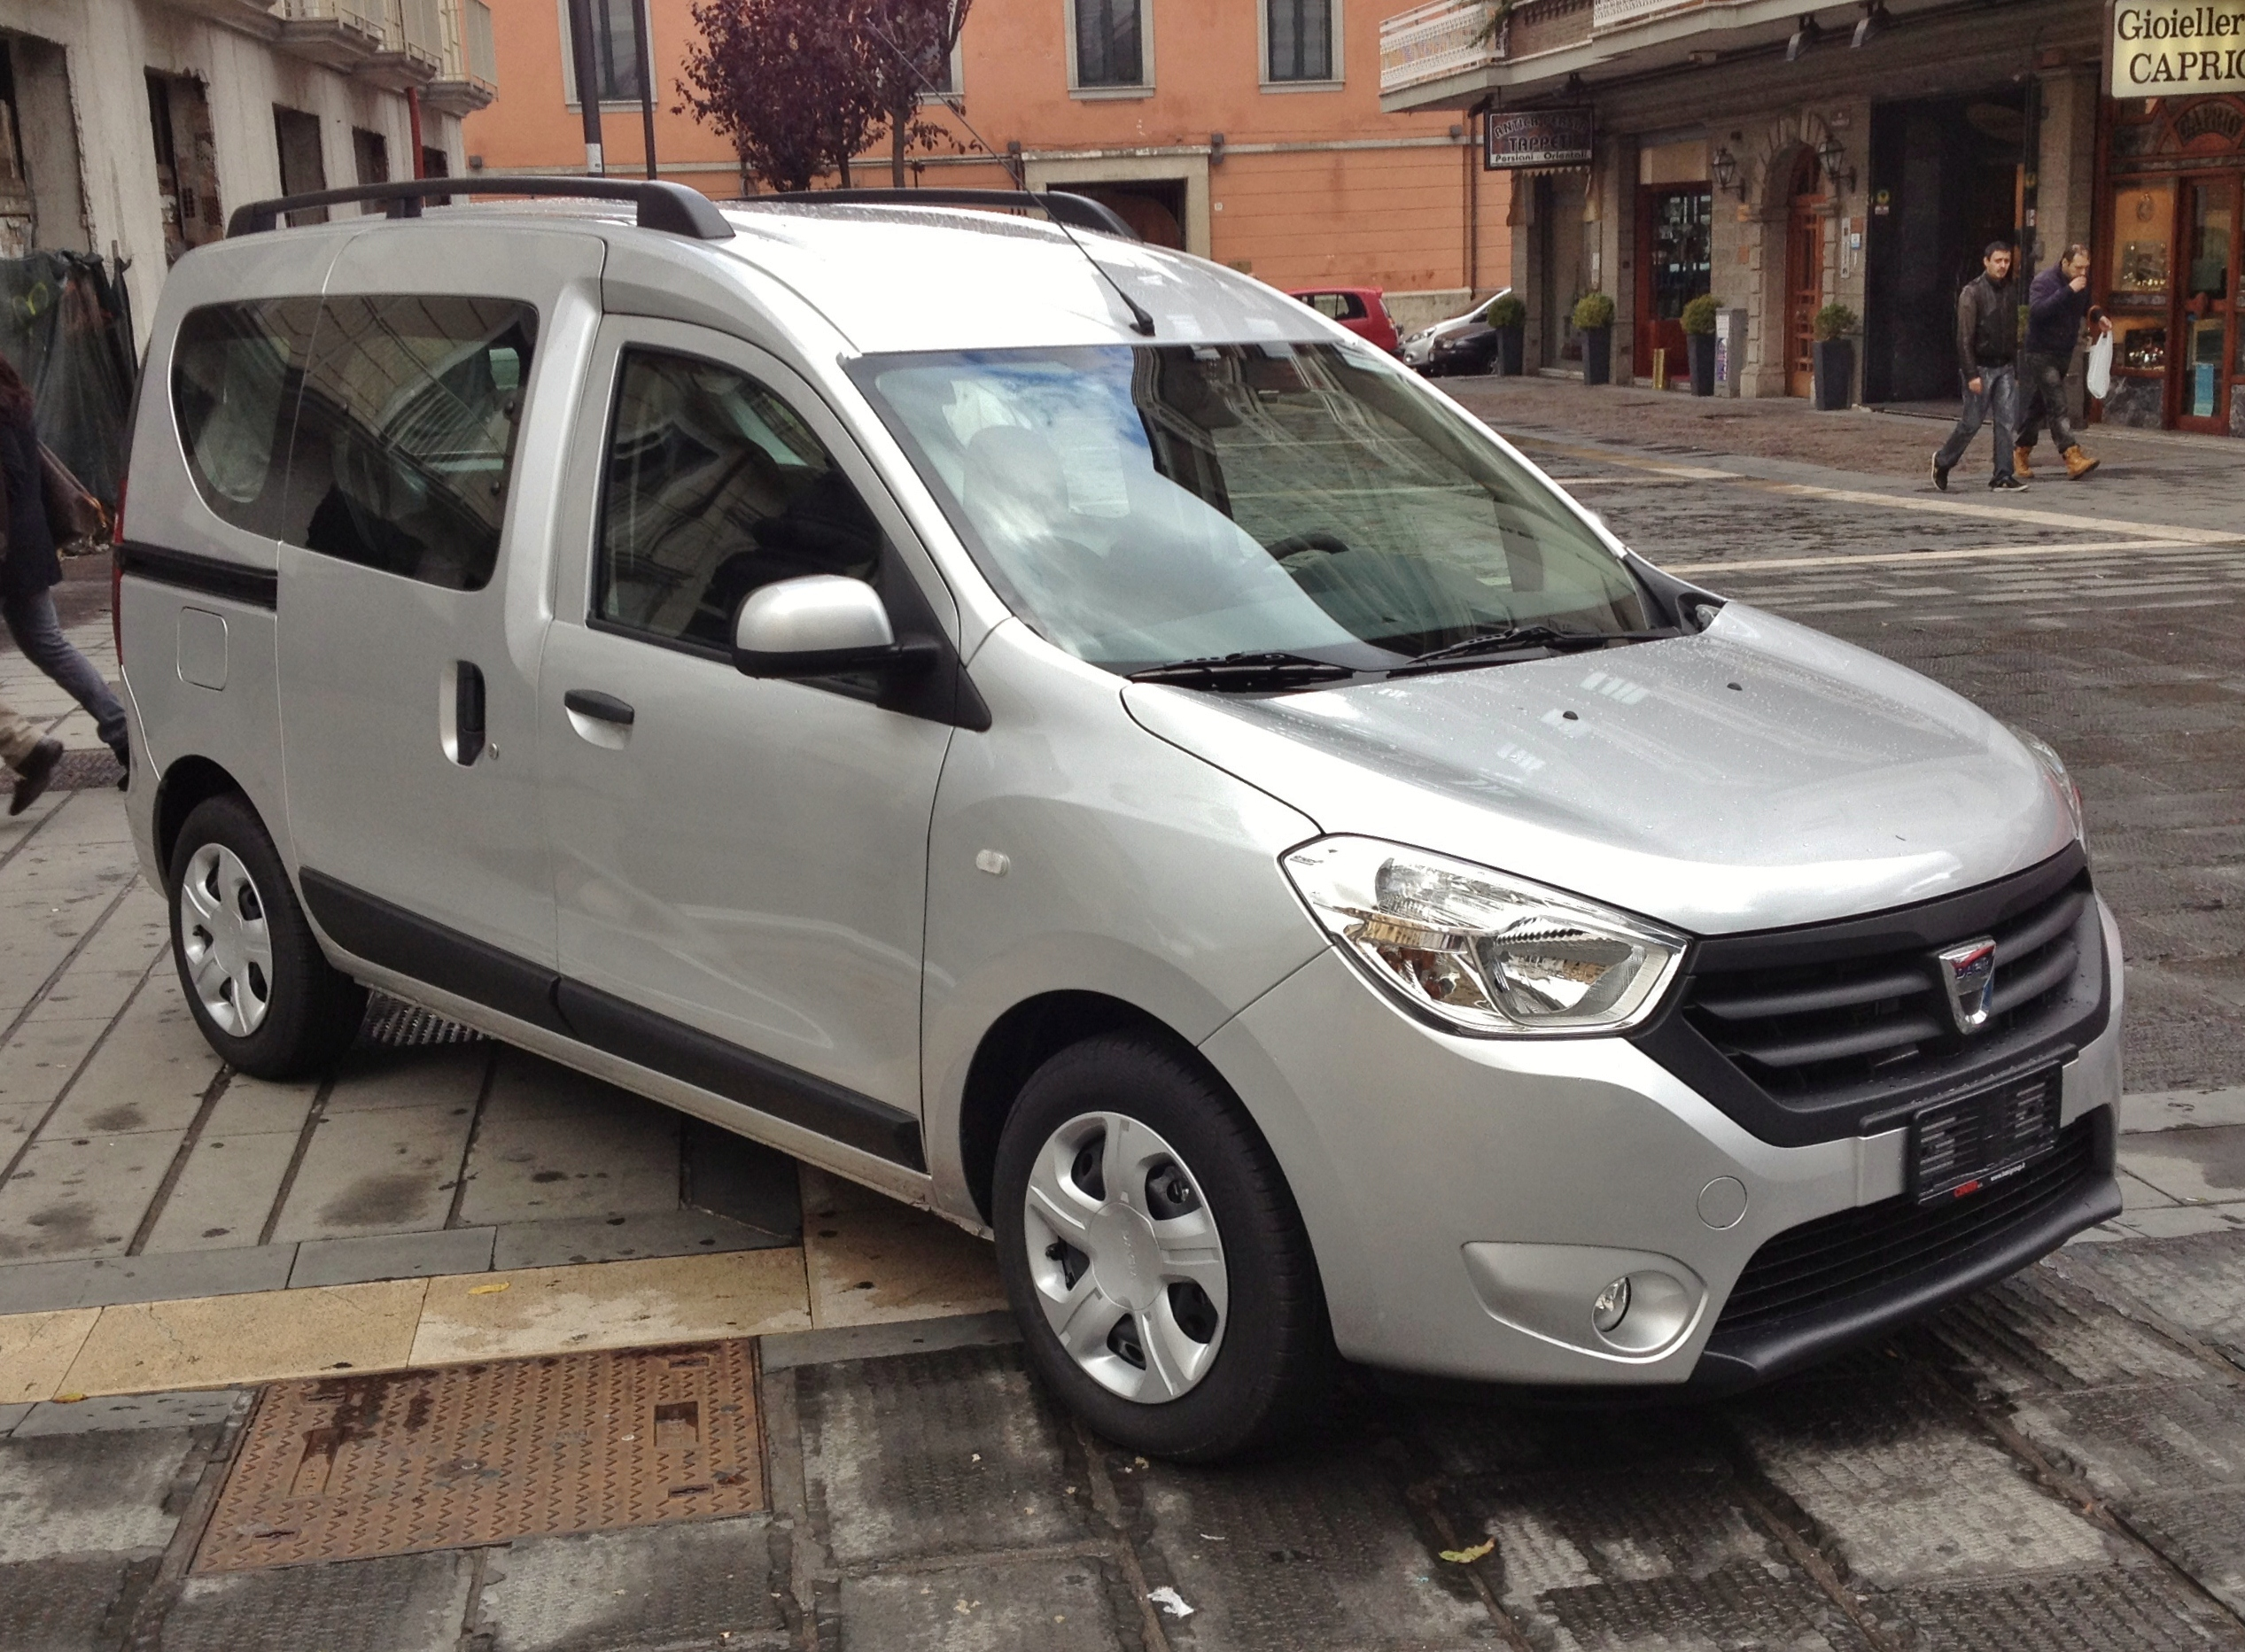 dacia lodgy pictures #9